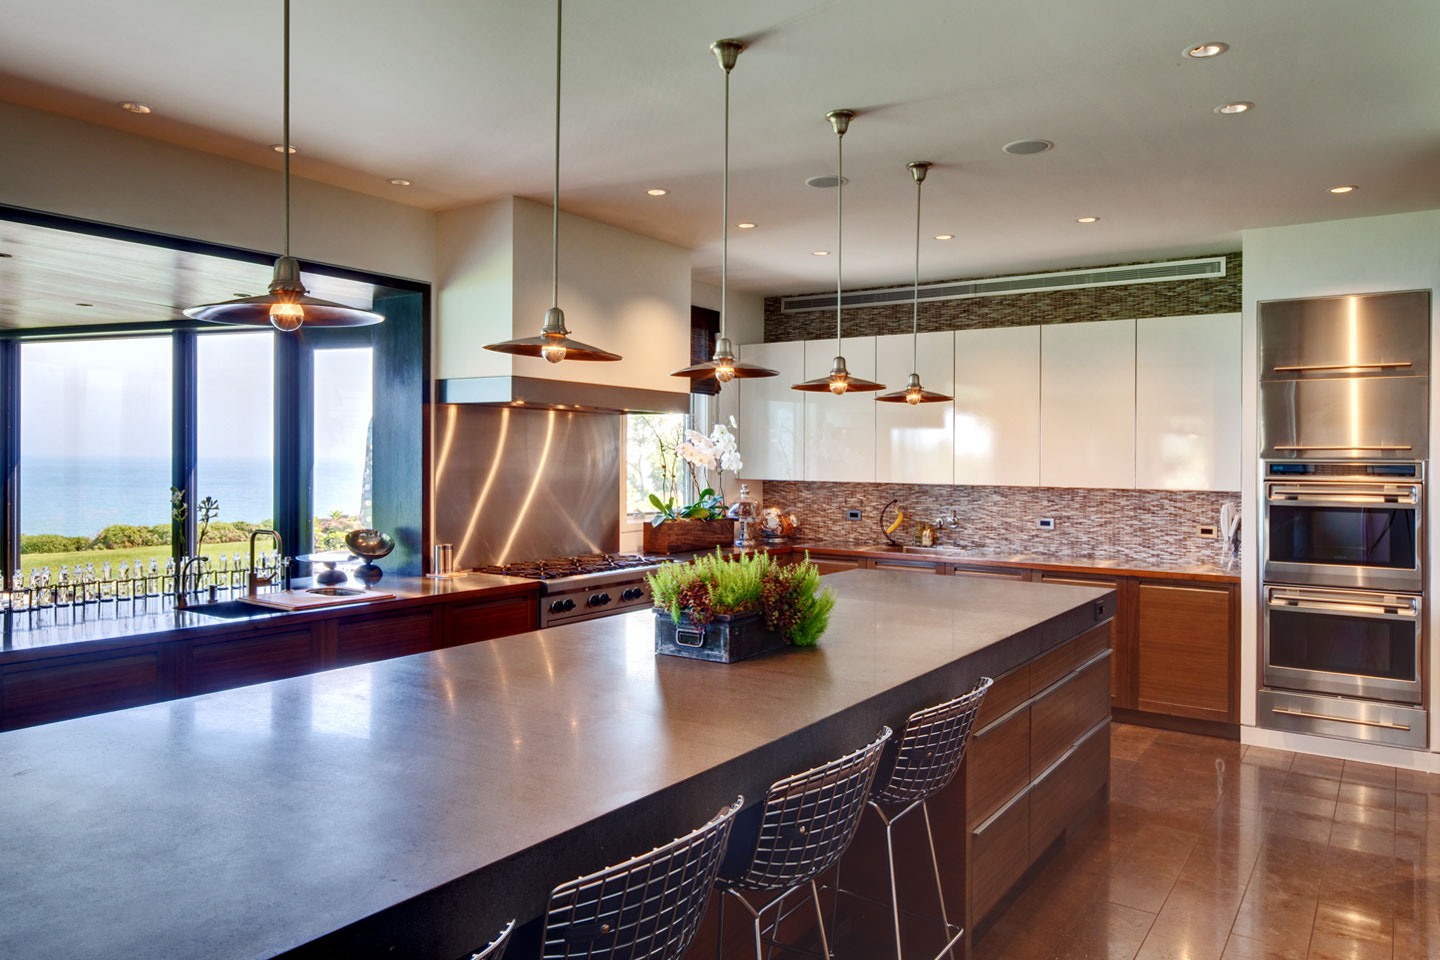 a large, modern, professional kitchen designed and built by berliant builders that has an amazing view